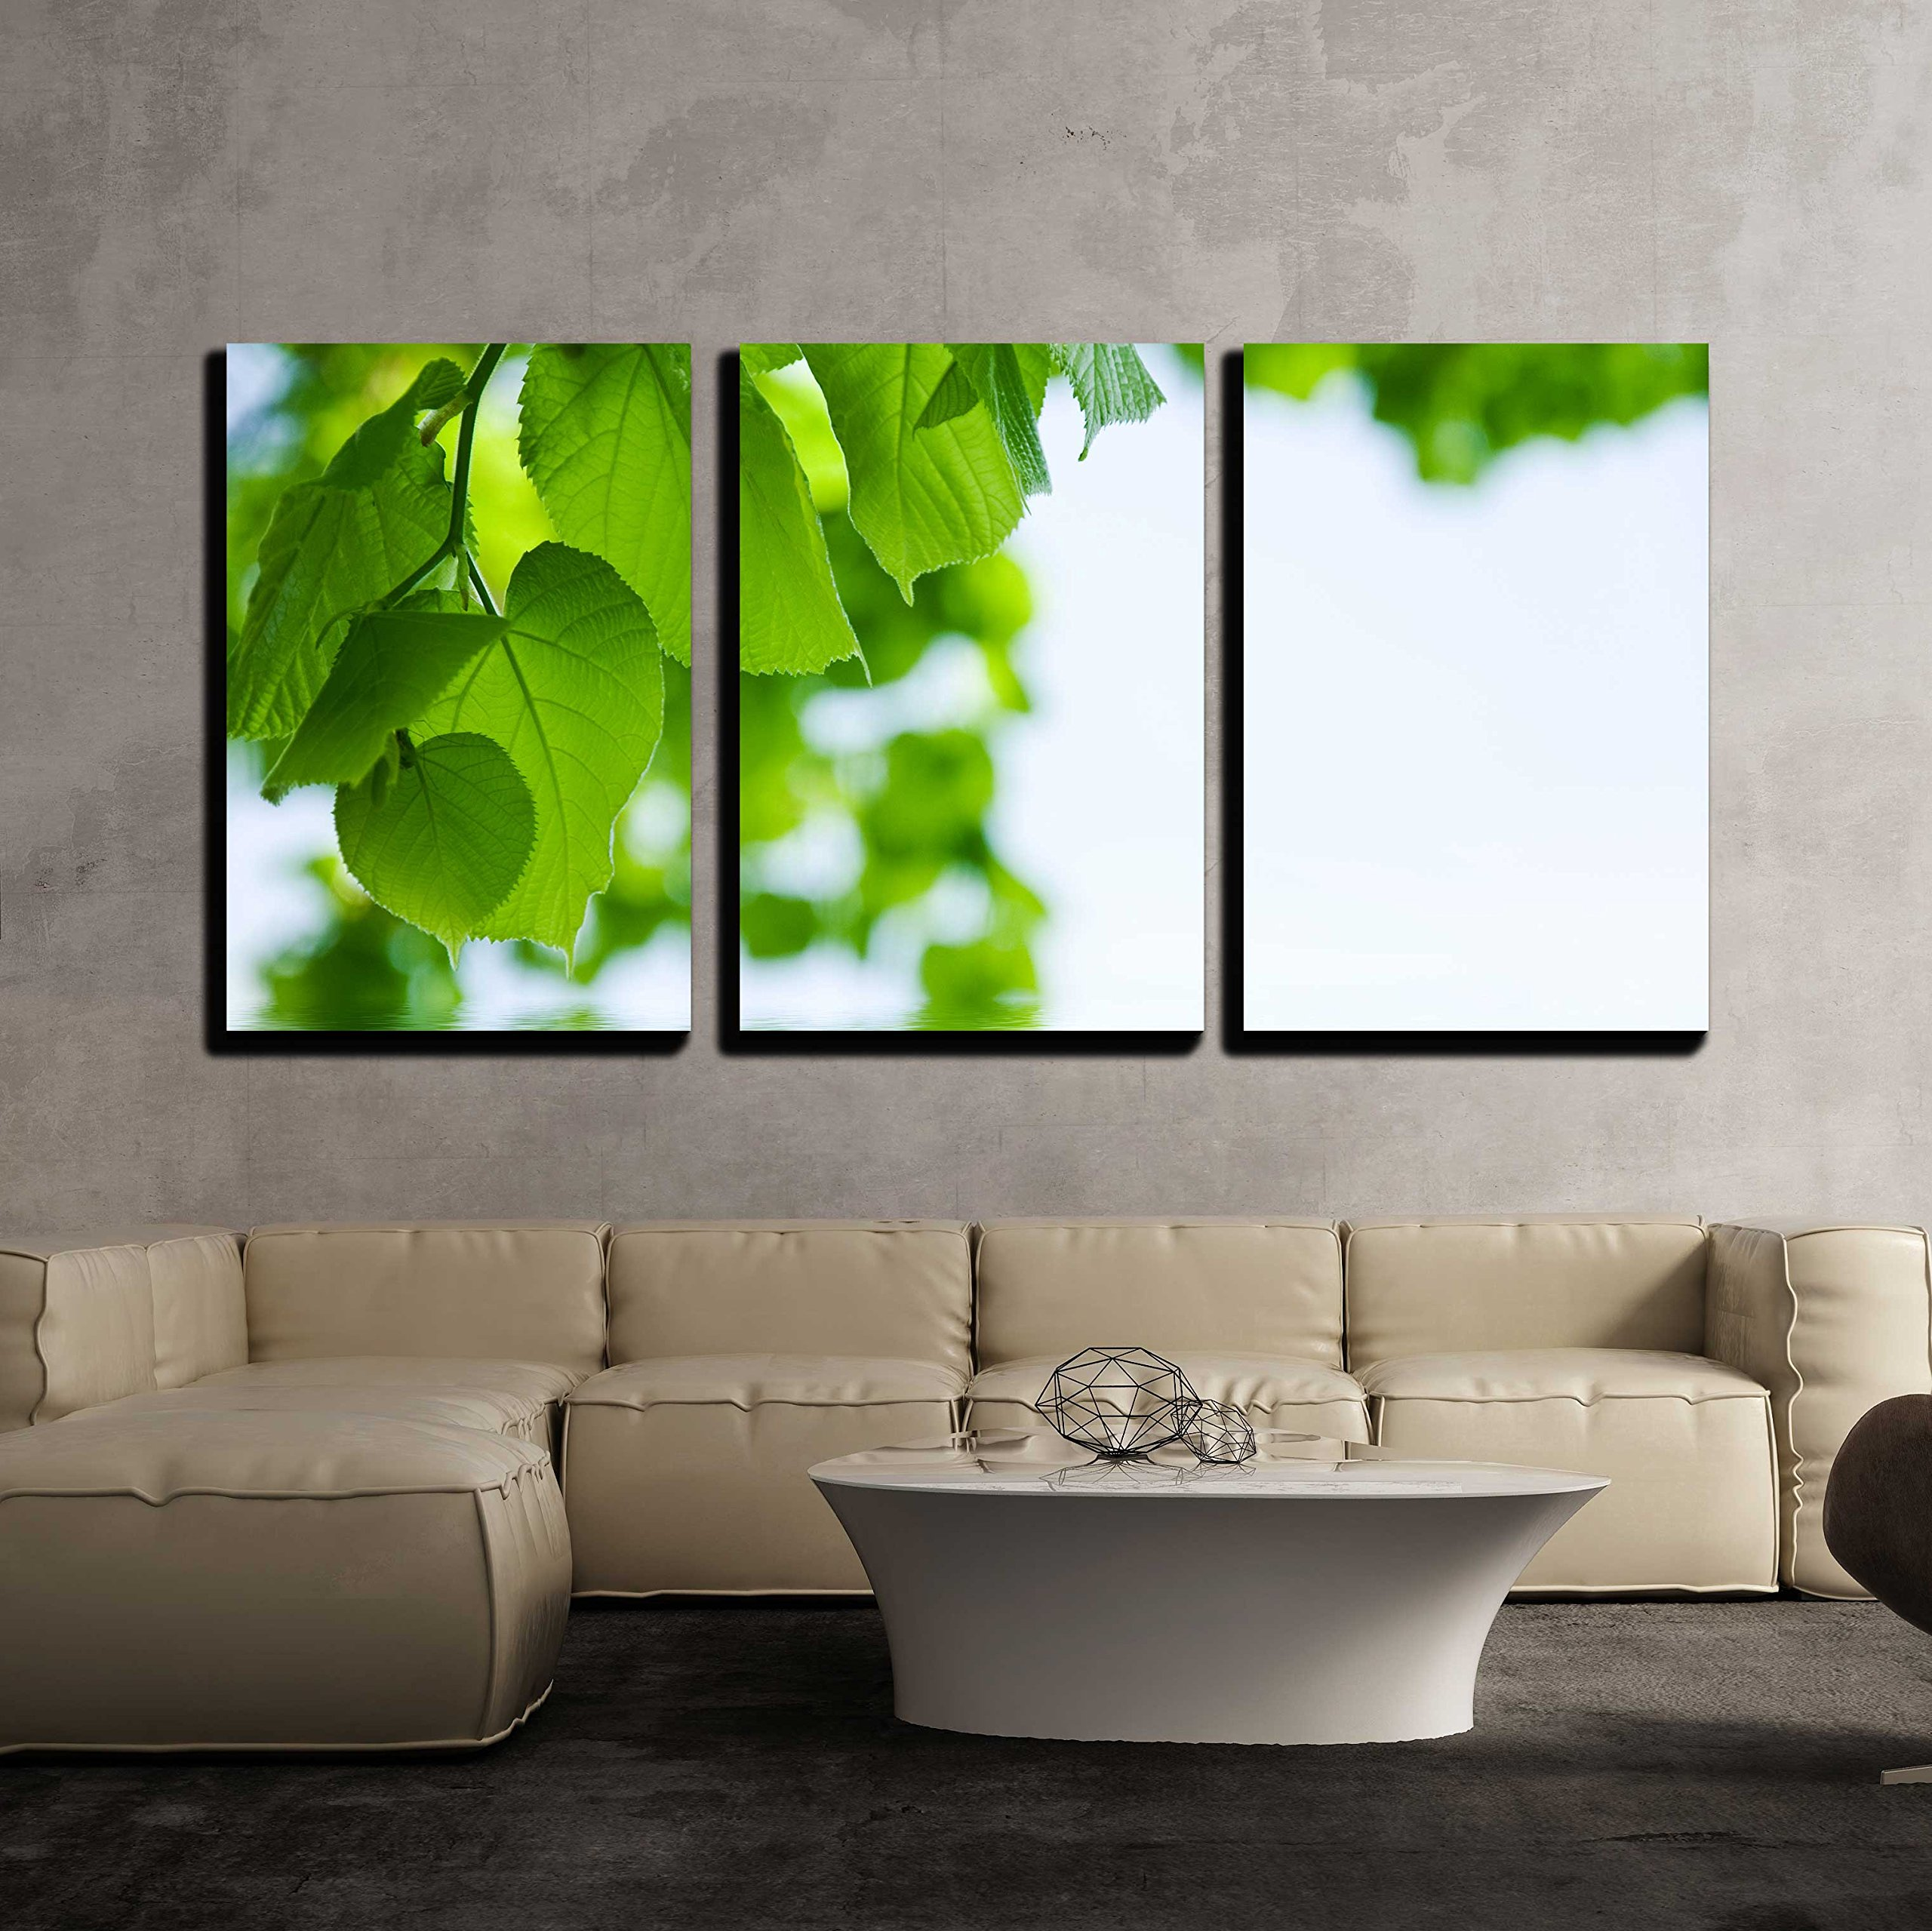 "wall26 - 3 Piece Canvas Wall Art - Nature Background - Lime and Water Relflexion - Modern Home Decor Stretched and Framed Ready to Hang - 16""x24""x3 Panels"